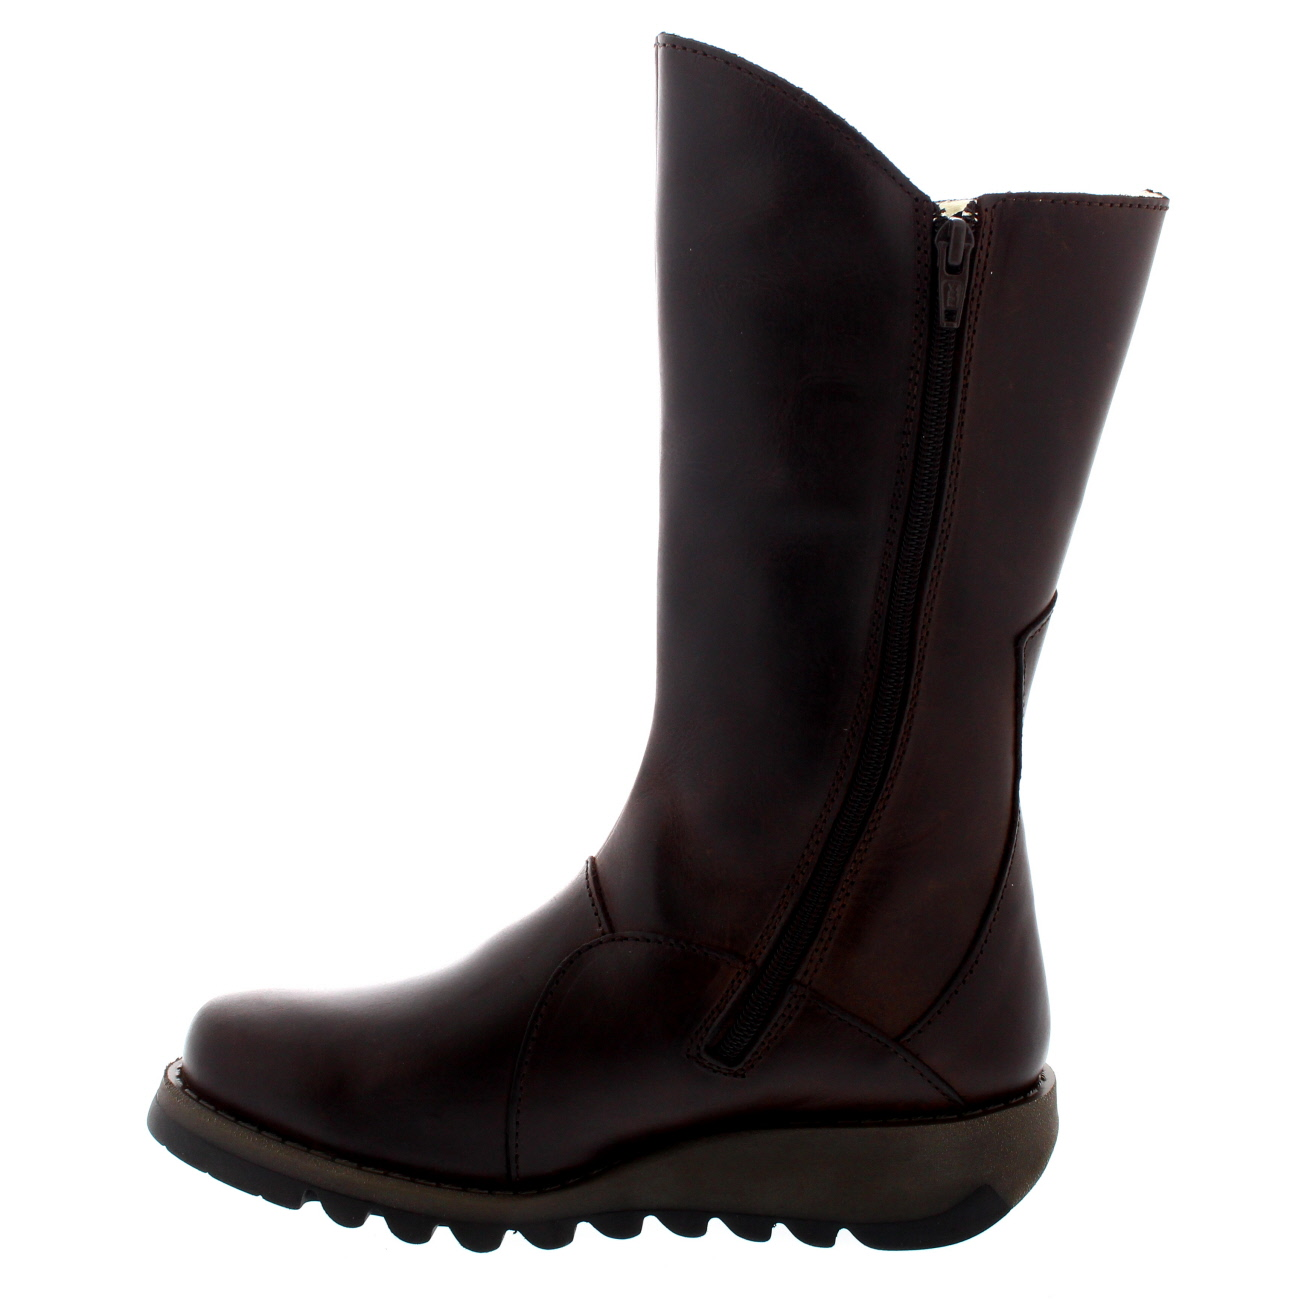 Womens-Fly-London-Mes-2-Warm-Leather-Winter-